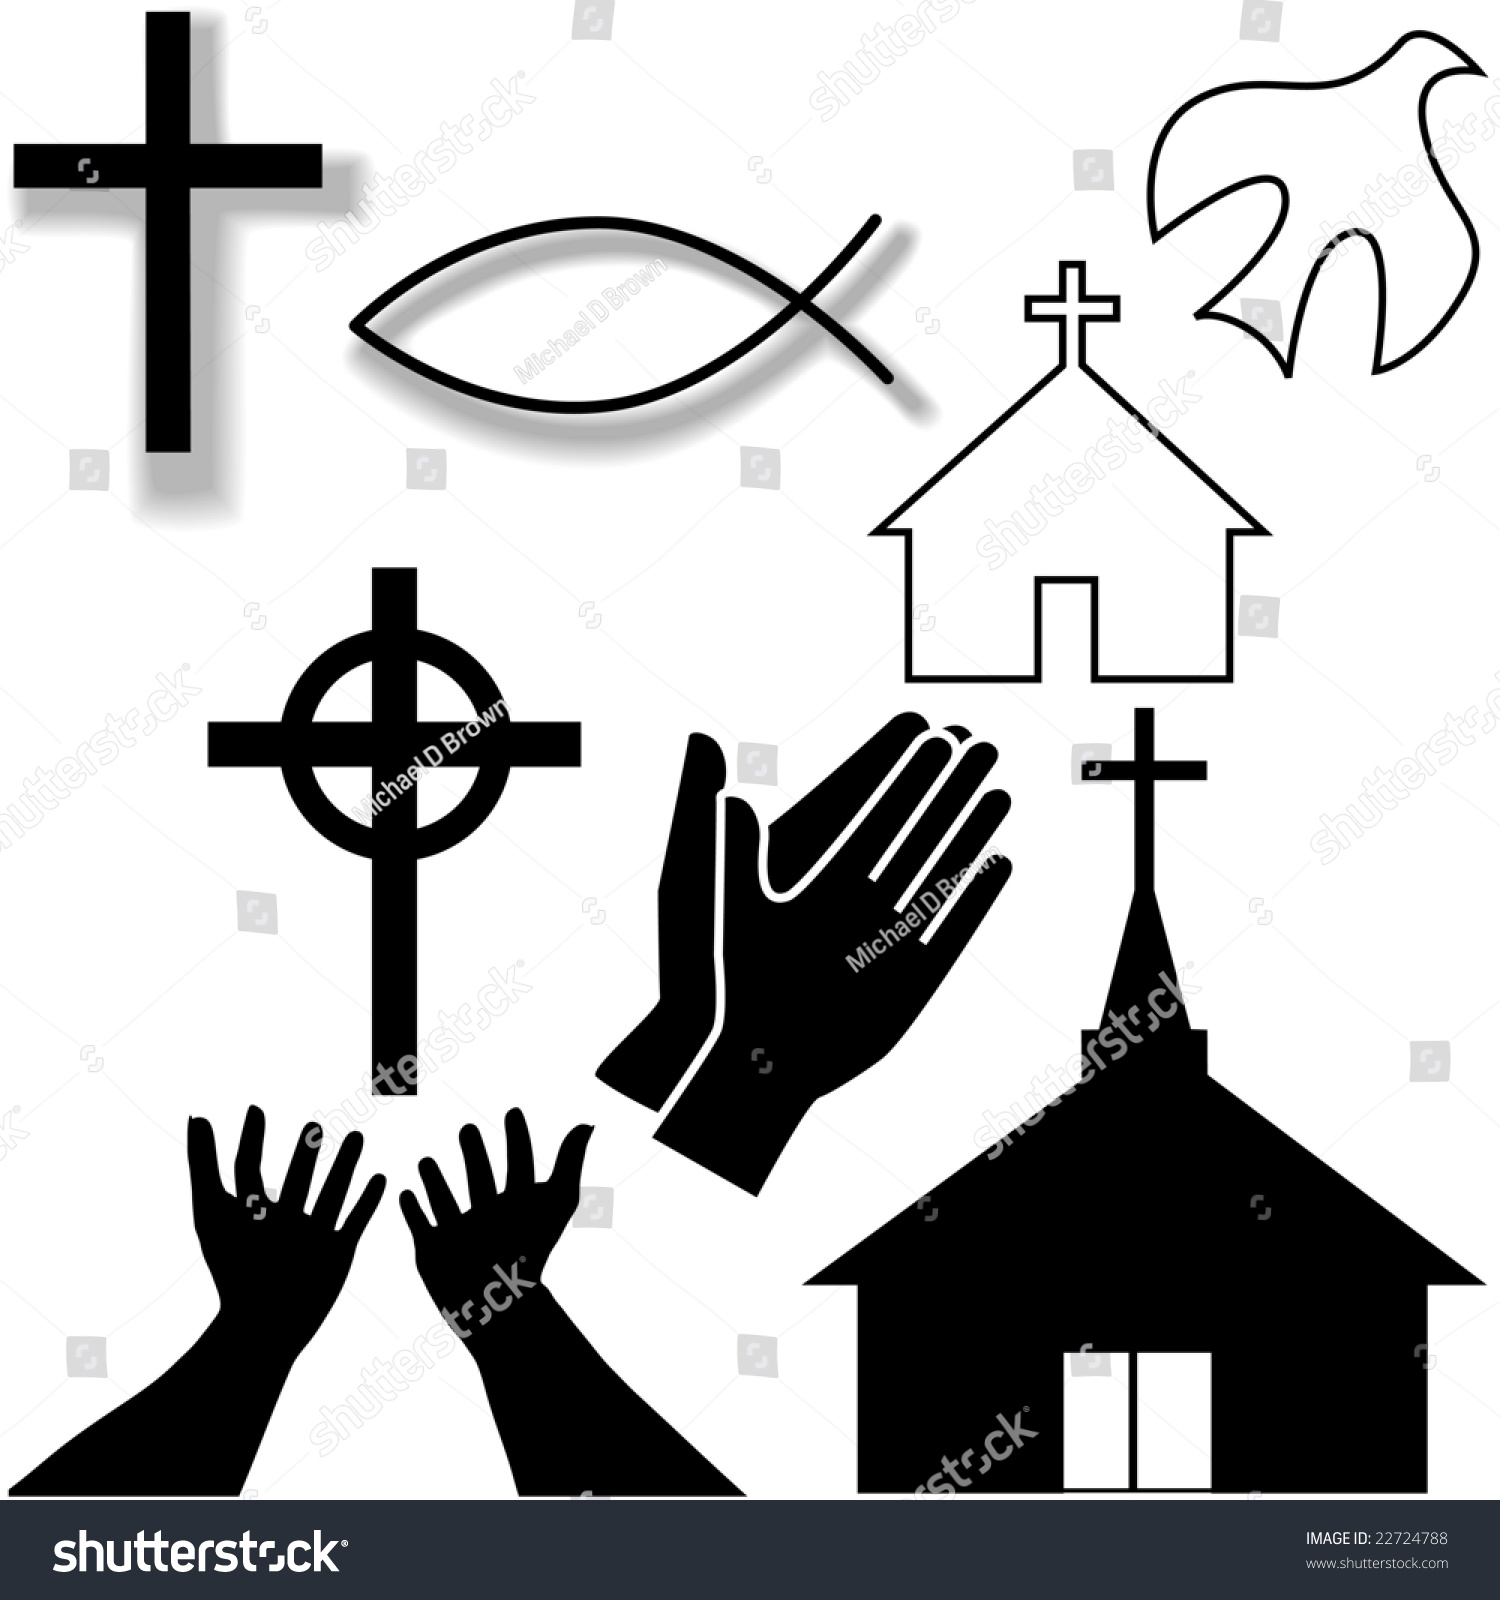 Churches crosses holy spirit dove fish stock vector 22724788 churches crosses holy spirit dove fish symbol hands praying and in supplication biocorpaavc